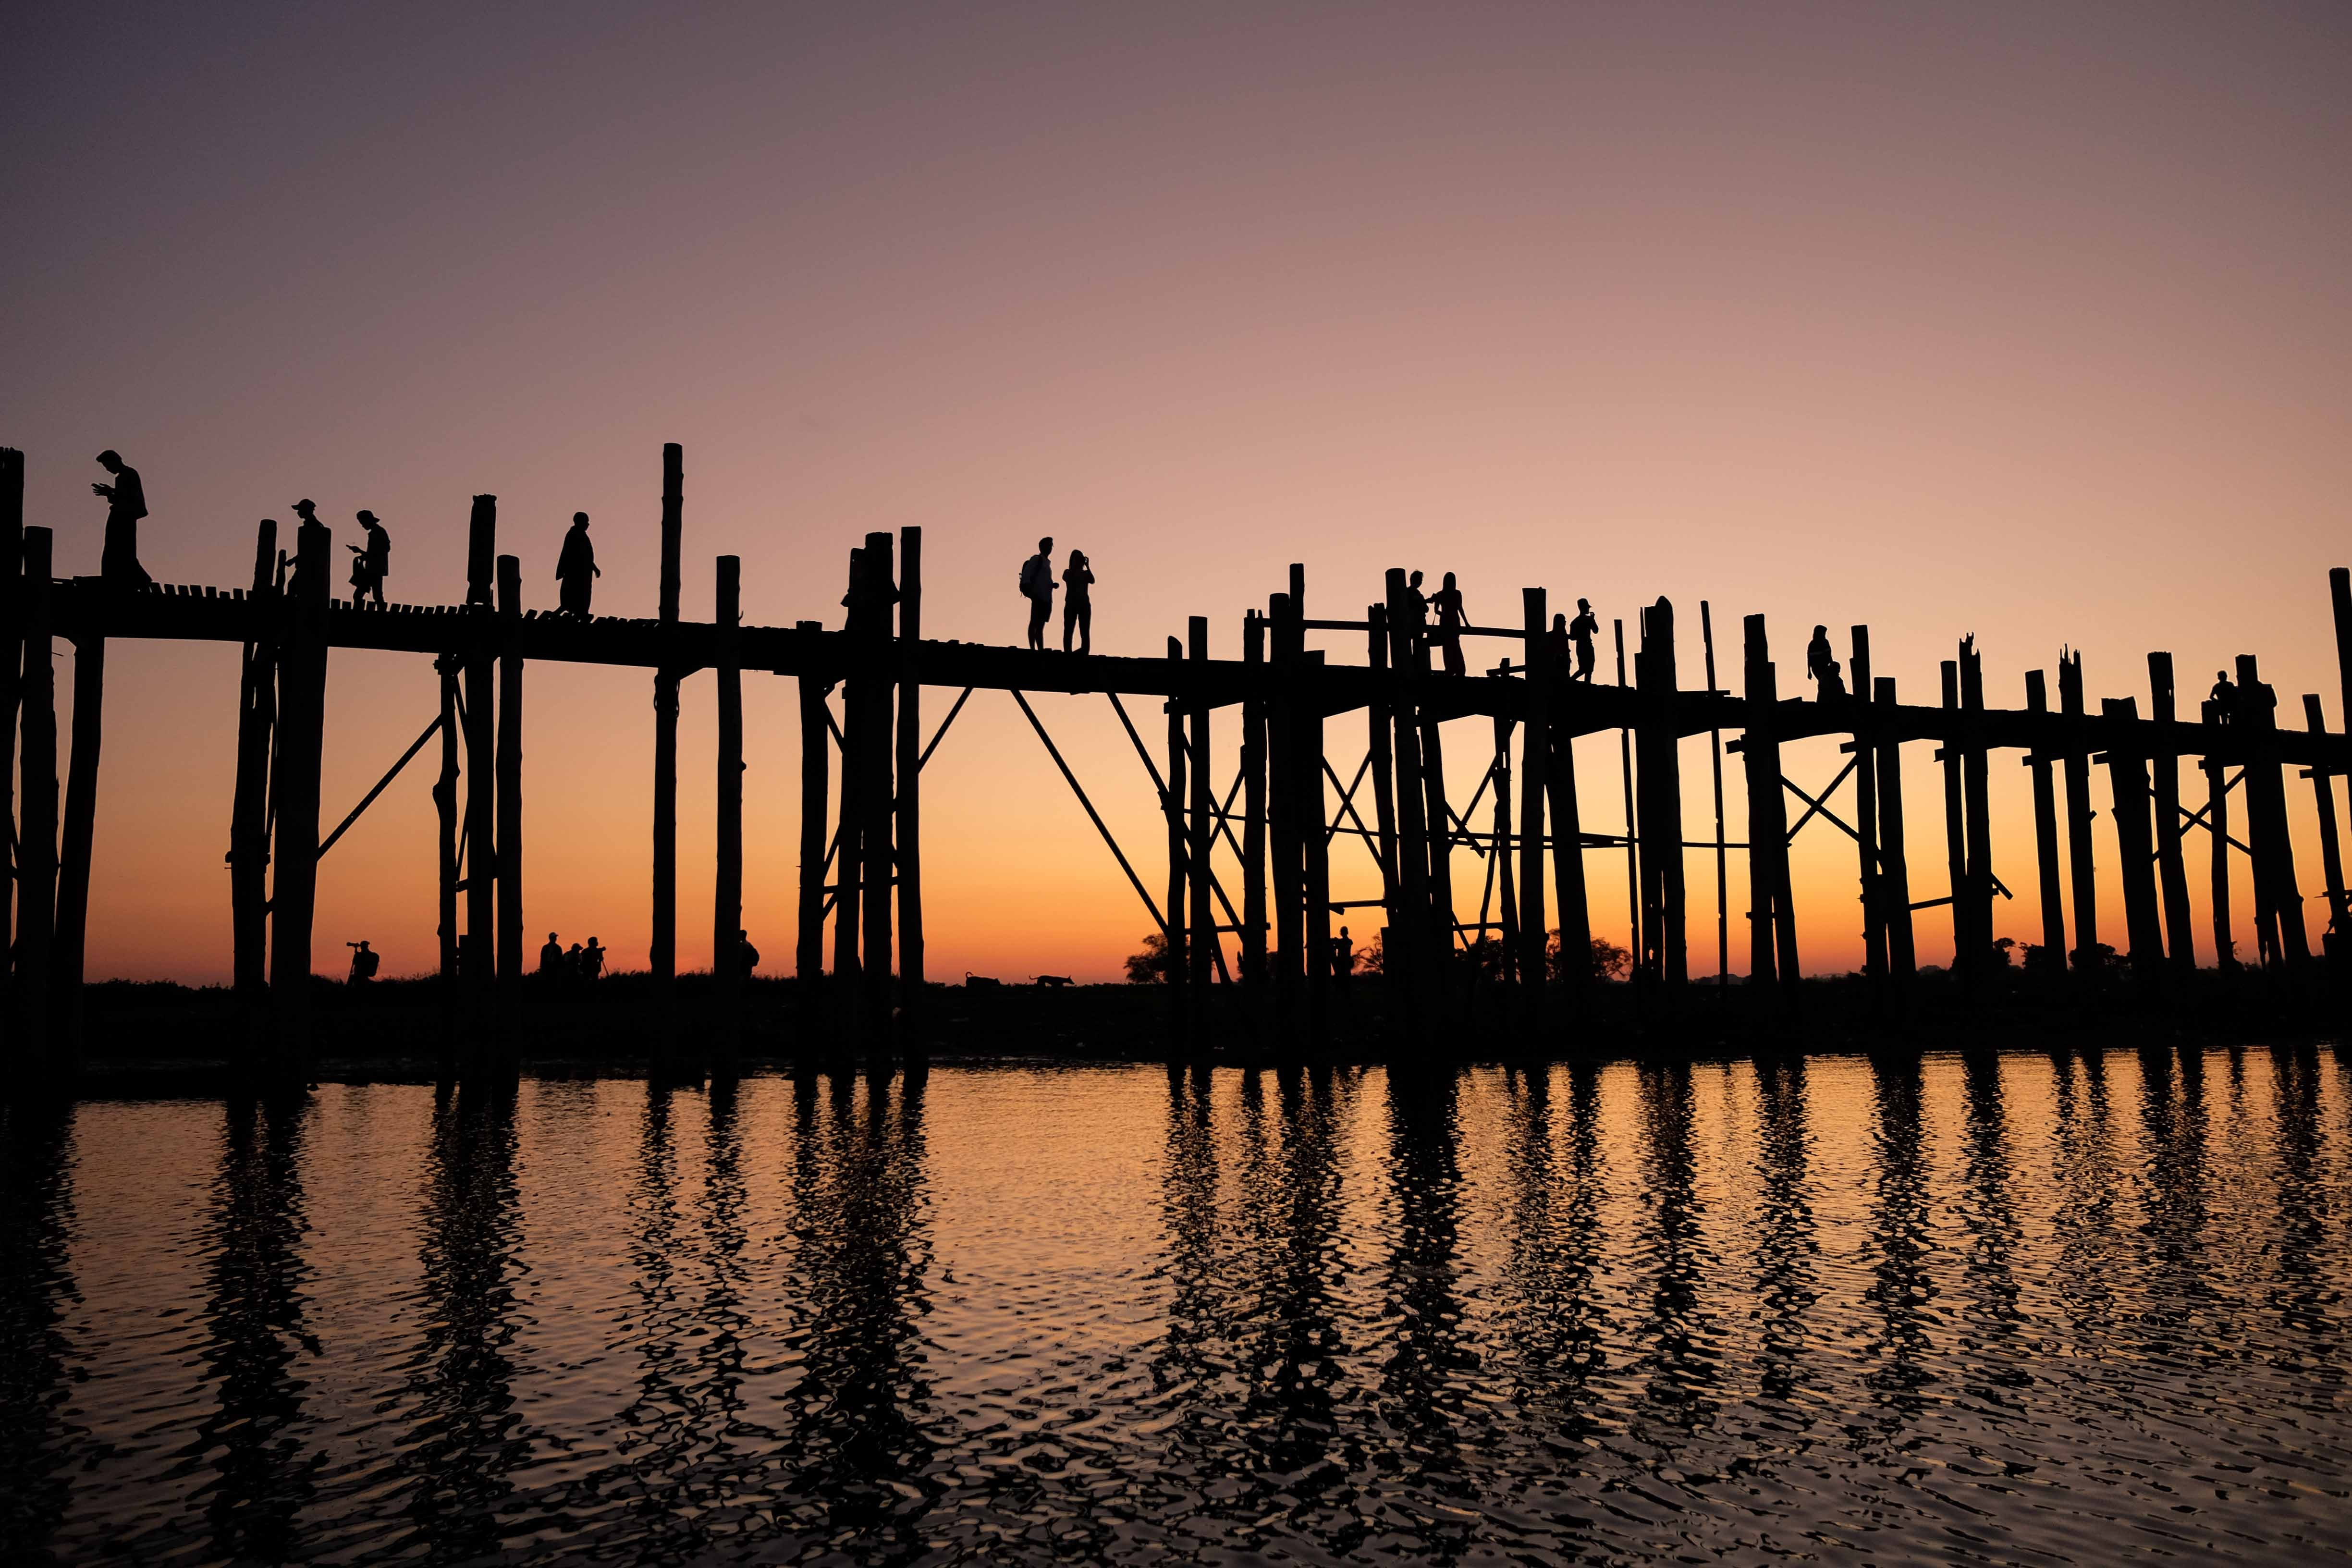 silhouette photograph of two person standing on wooden bridge during golden hour